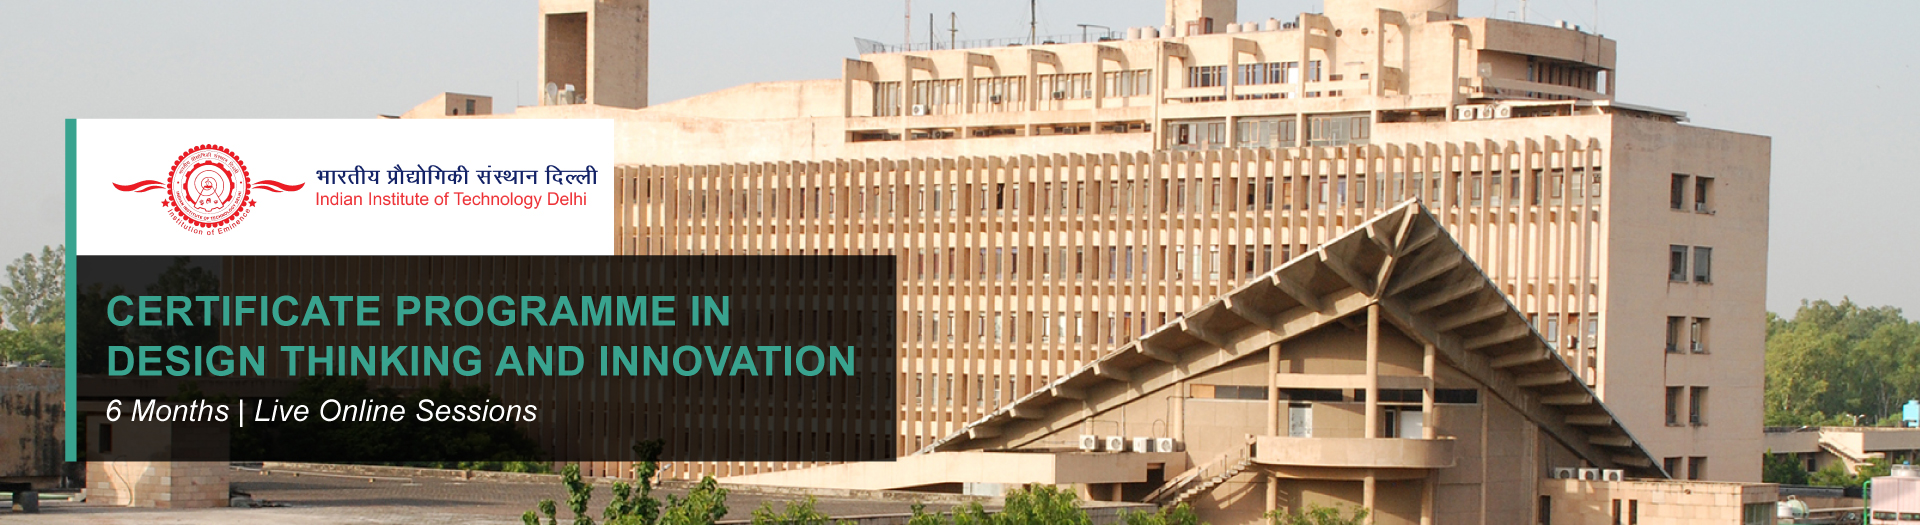 CERTIFICATE PROGRAMME IN DESIGN THINKING AND INNOVATION